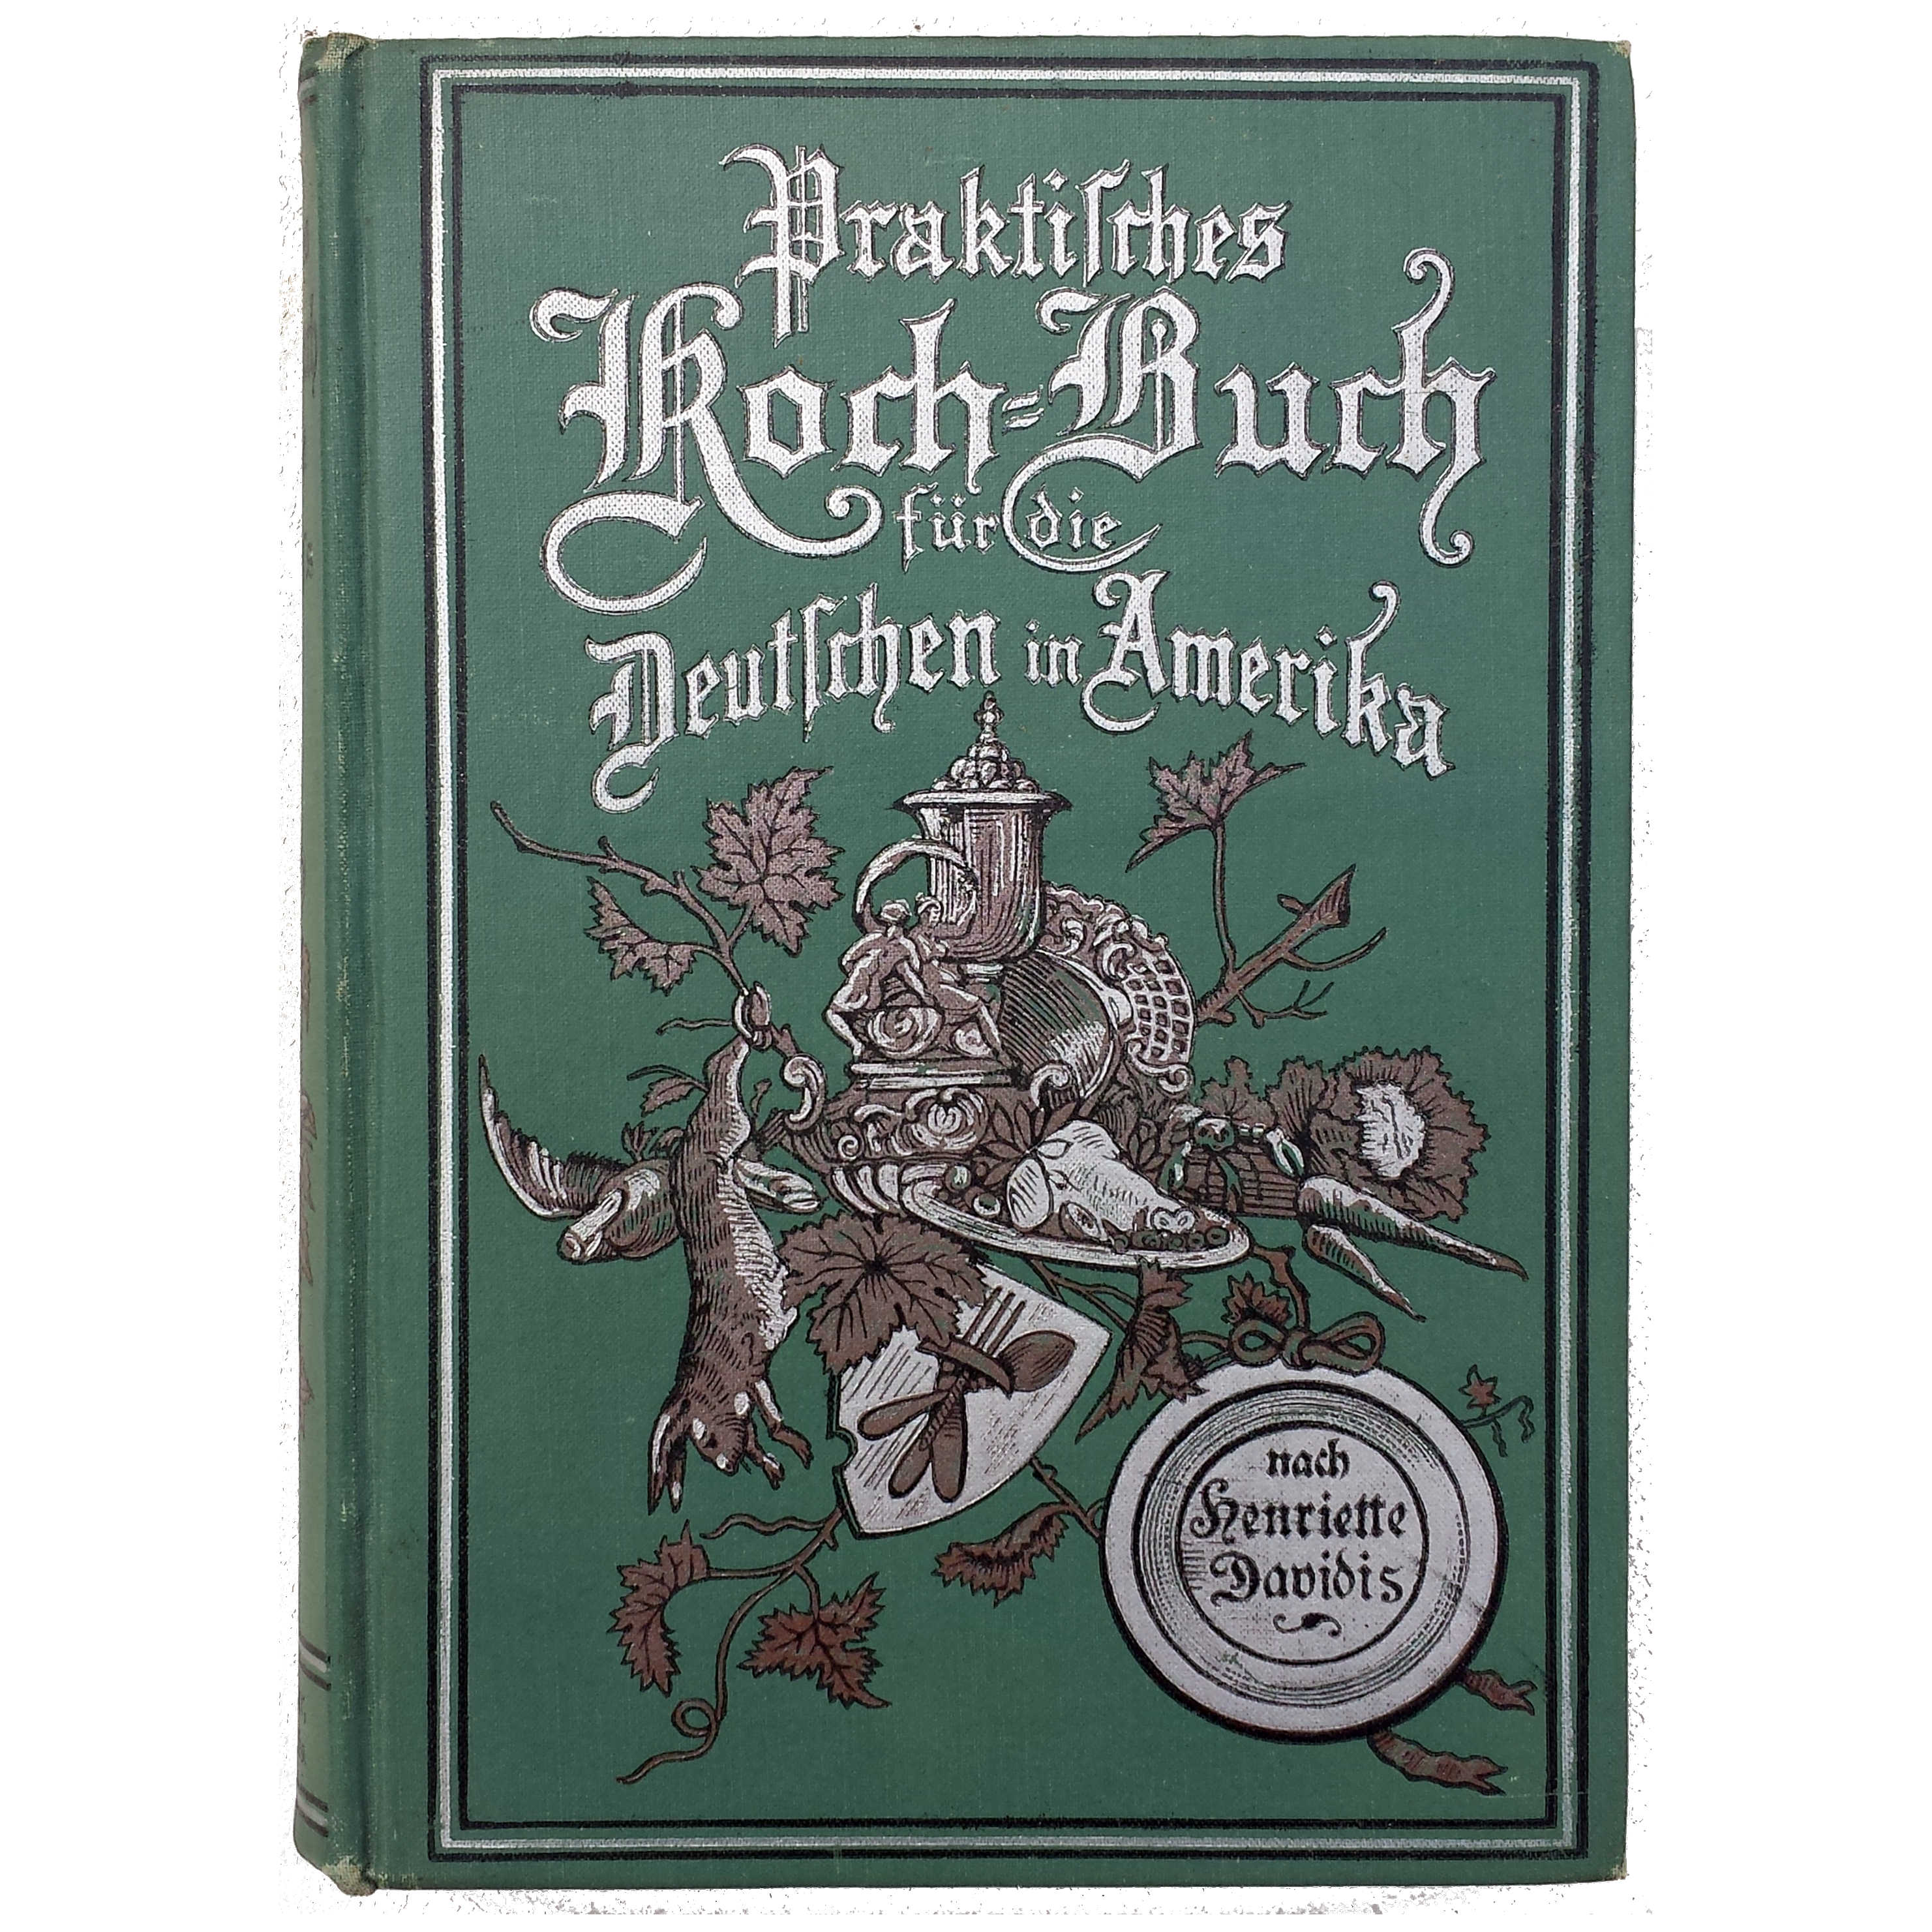 Perfect Henriette Davidis (ND/1899) Praktisches Koch Buch Für Die Deutschen In  Amerika U2013 German Cookbook